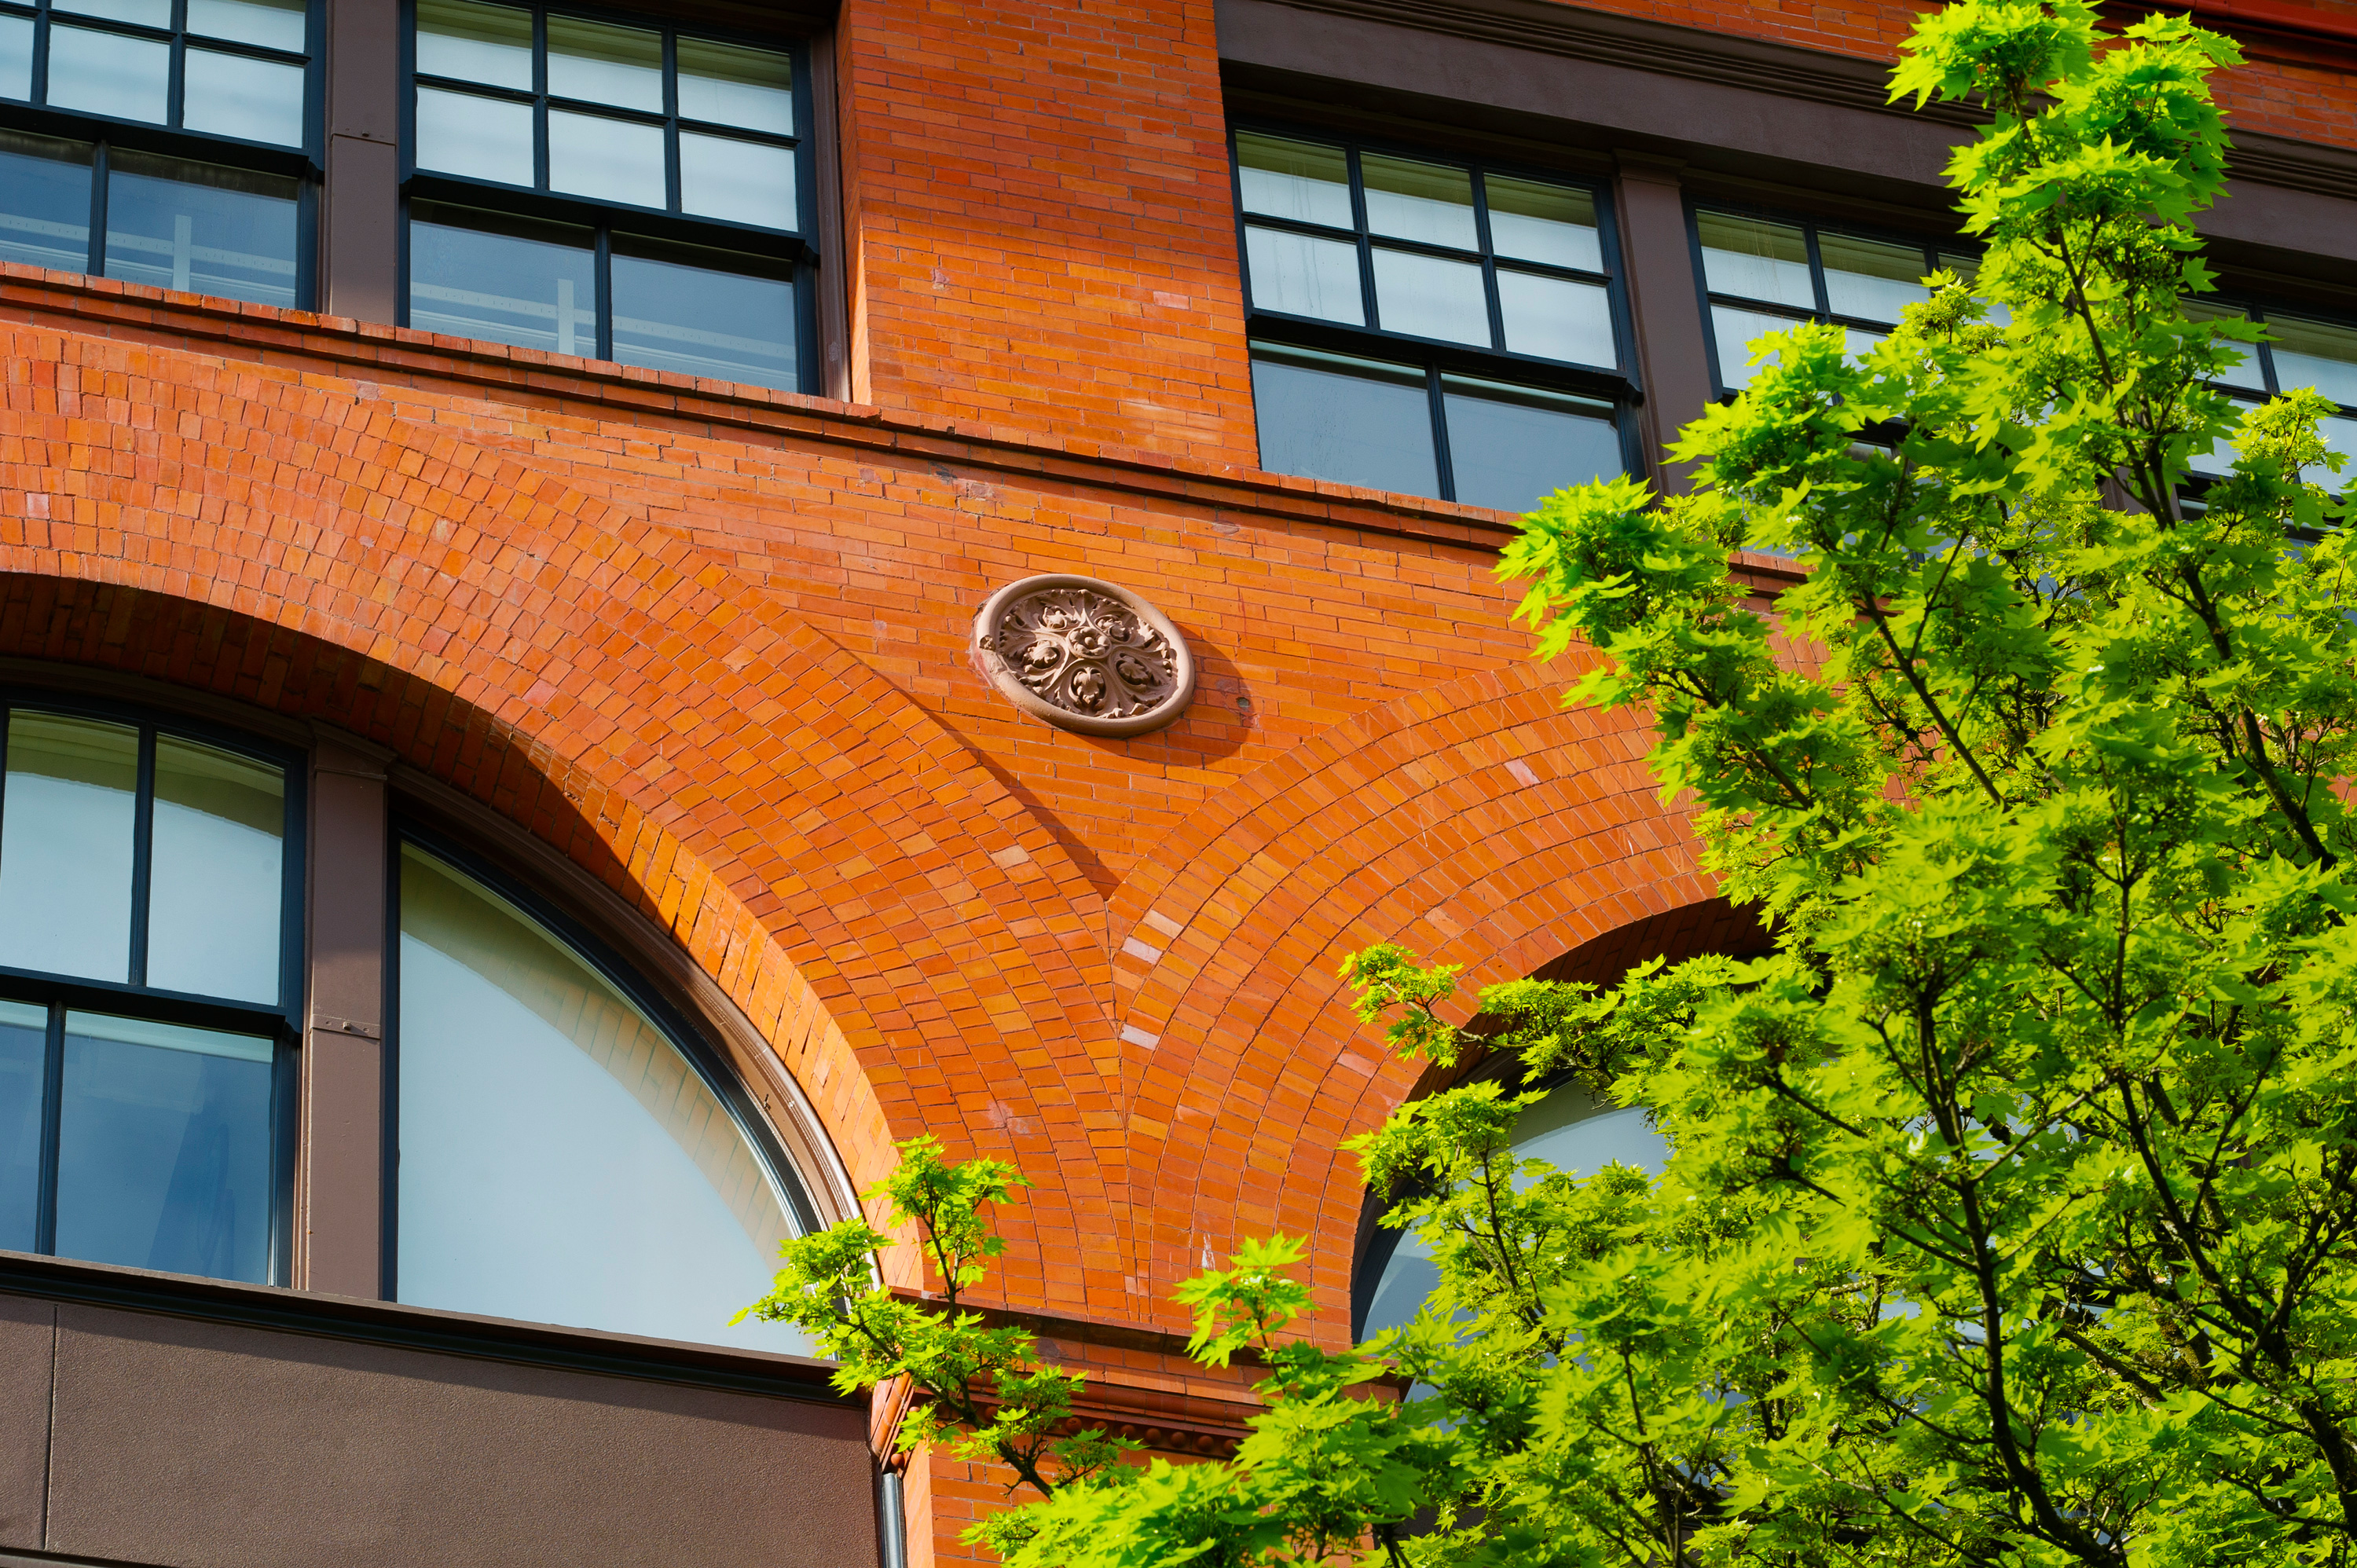 Awesome Church Of Scientology Portland Oregon #1: 34-Scientology-Portland-Building-Brick-Arches-Resette-Medallion.jpg